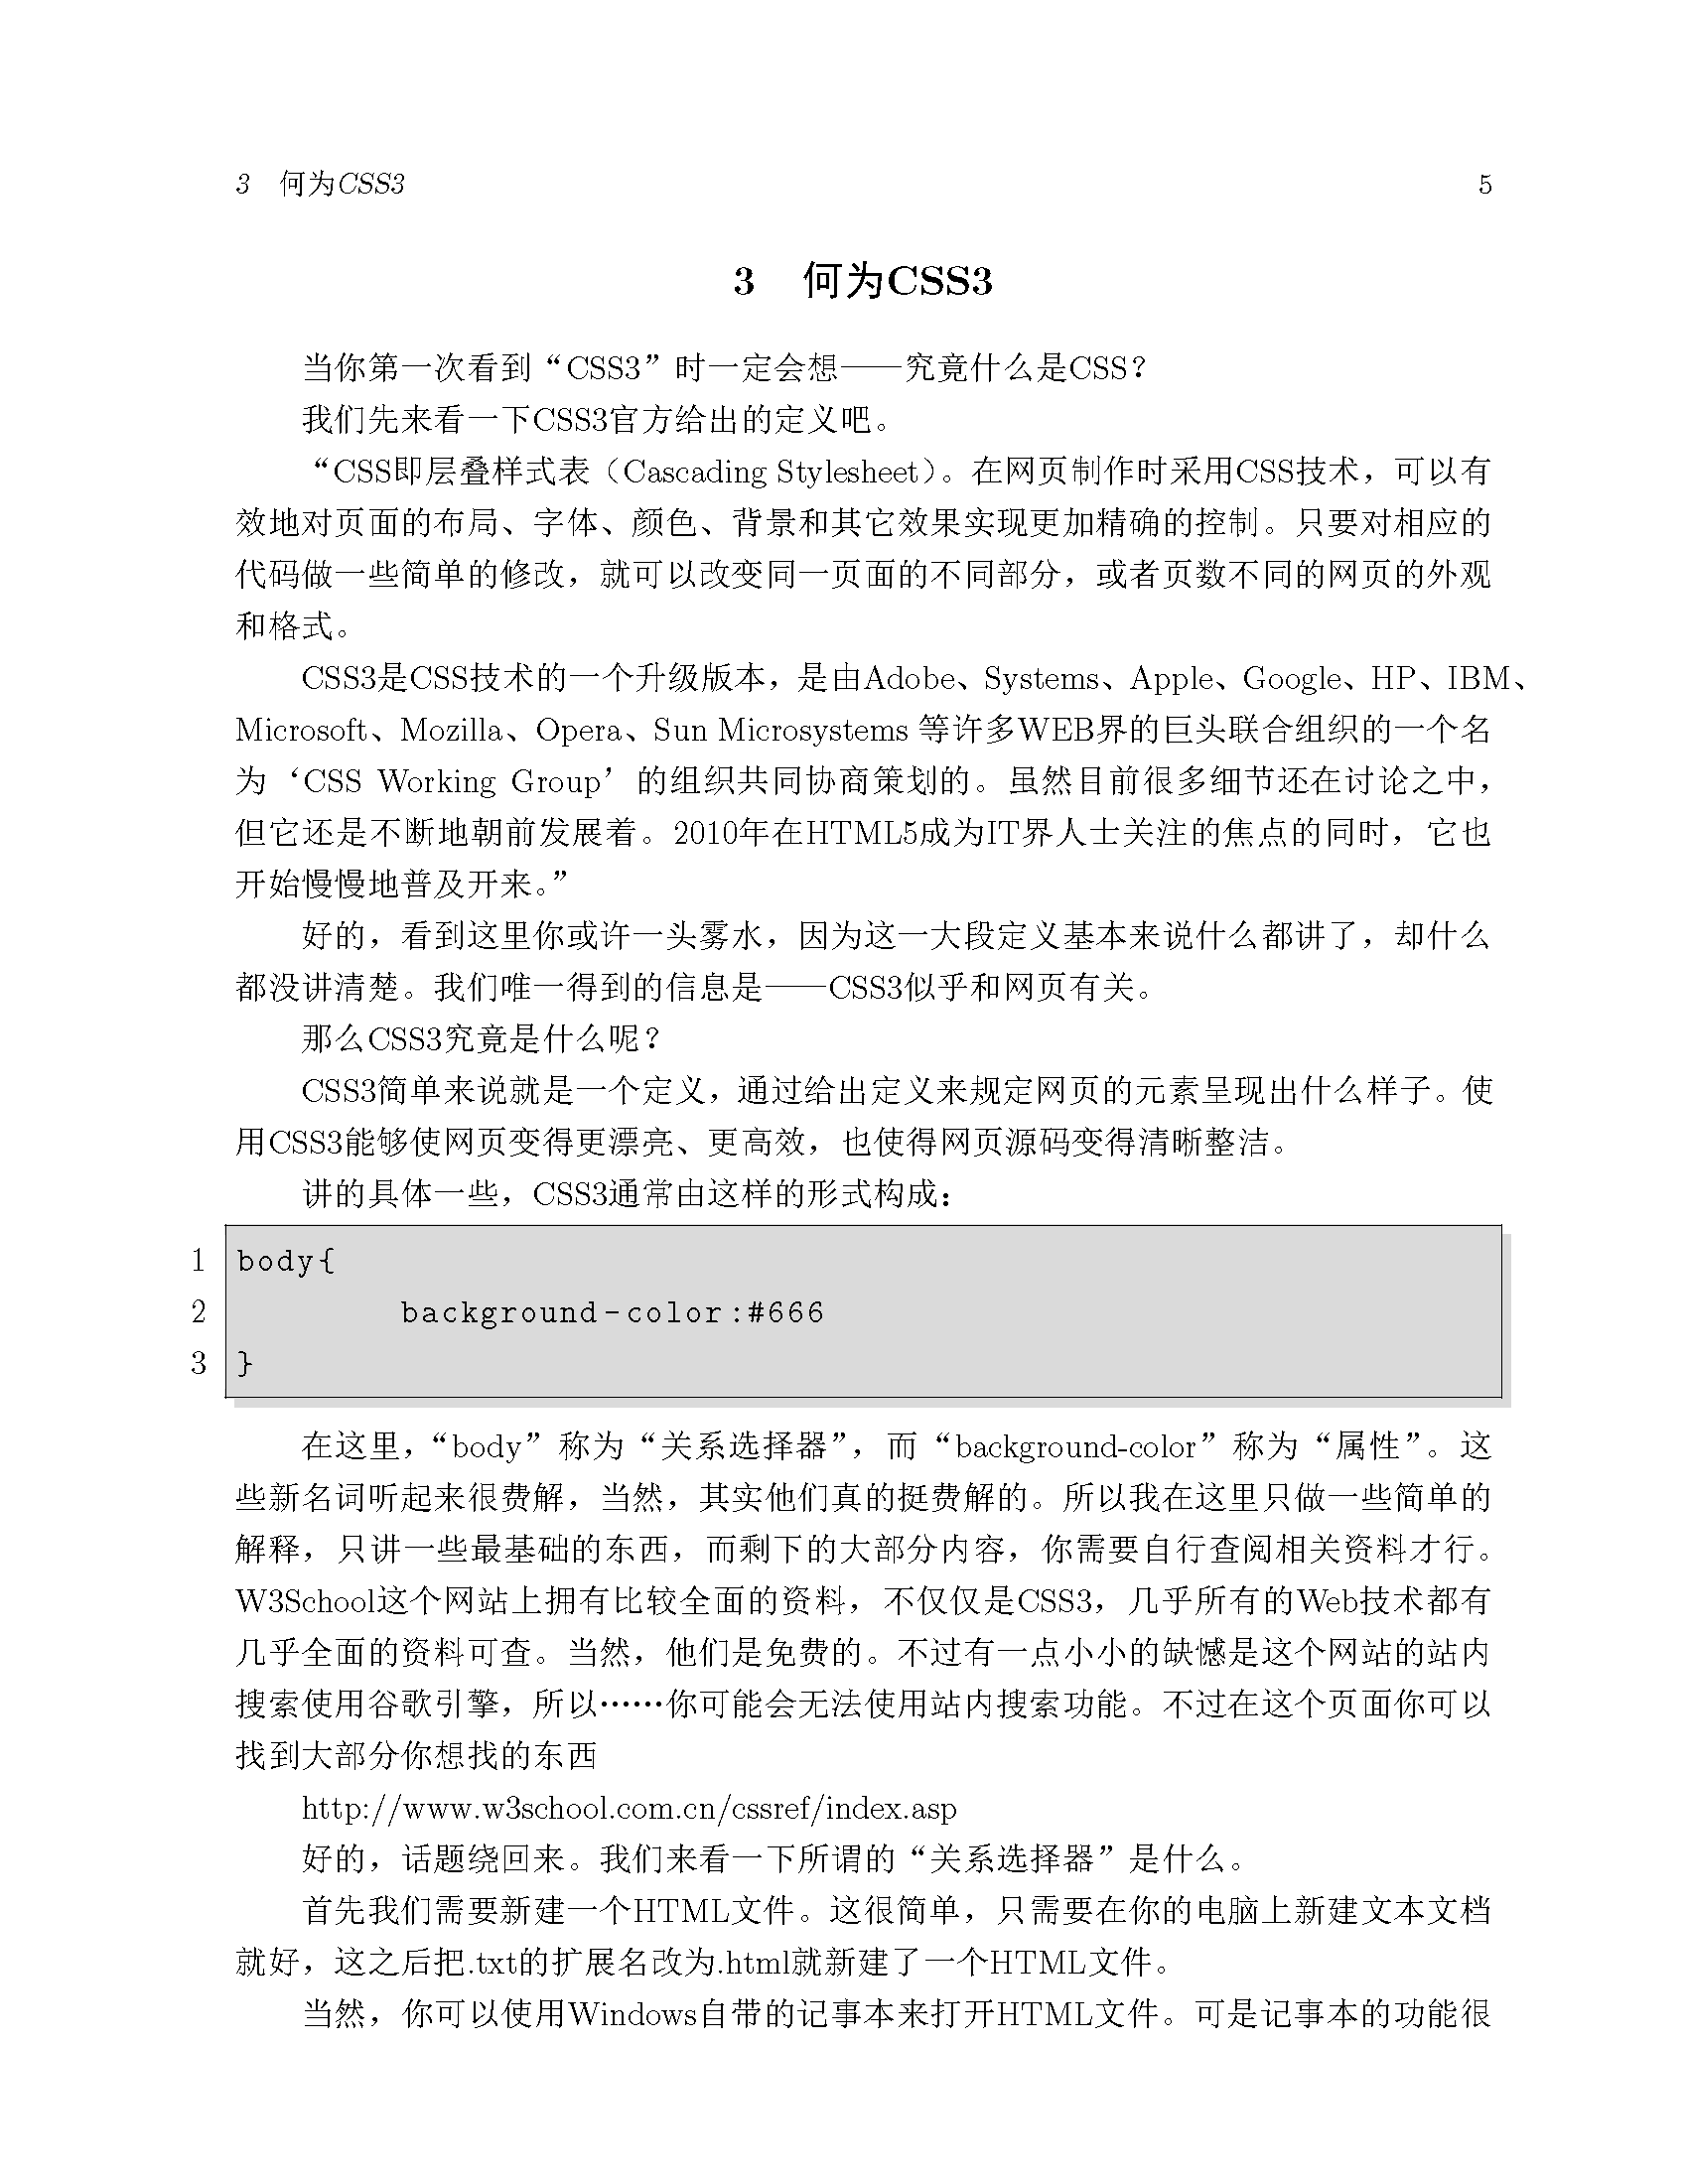 HTML5与CSS3_页面_05.png